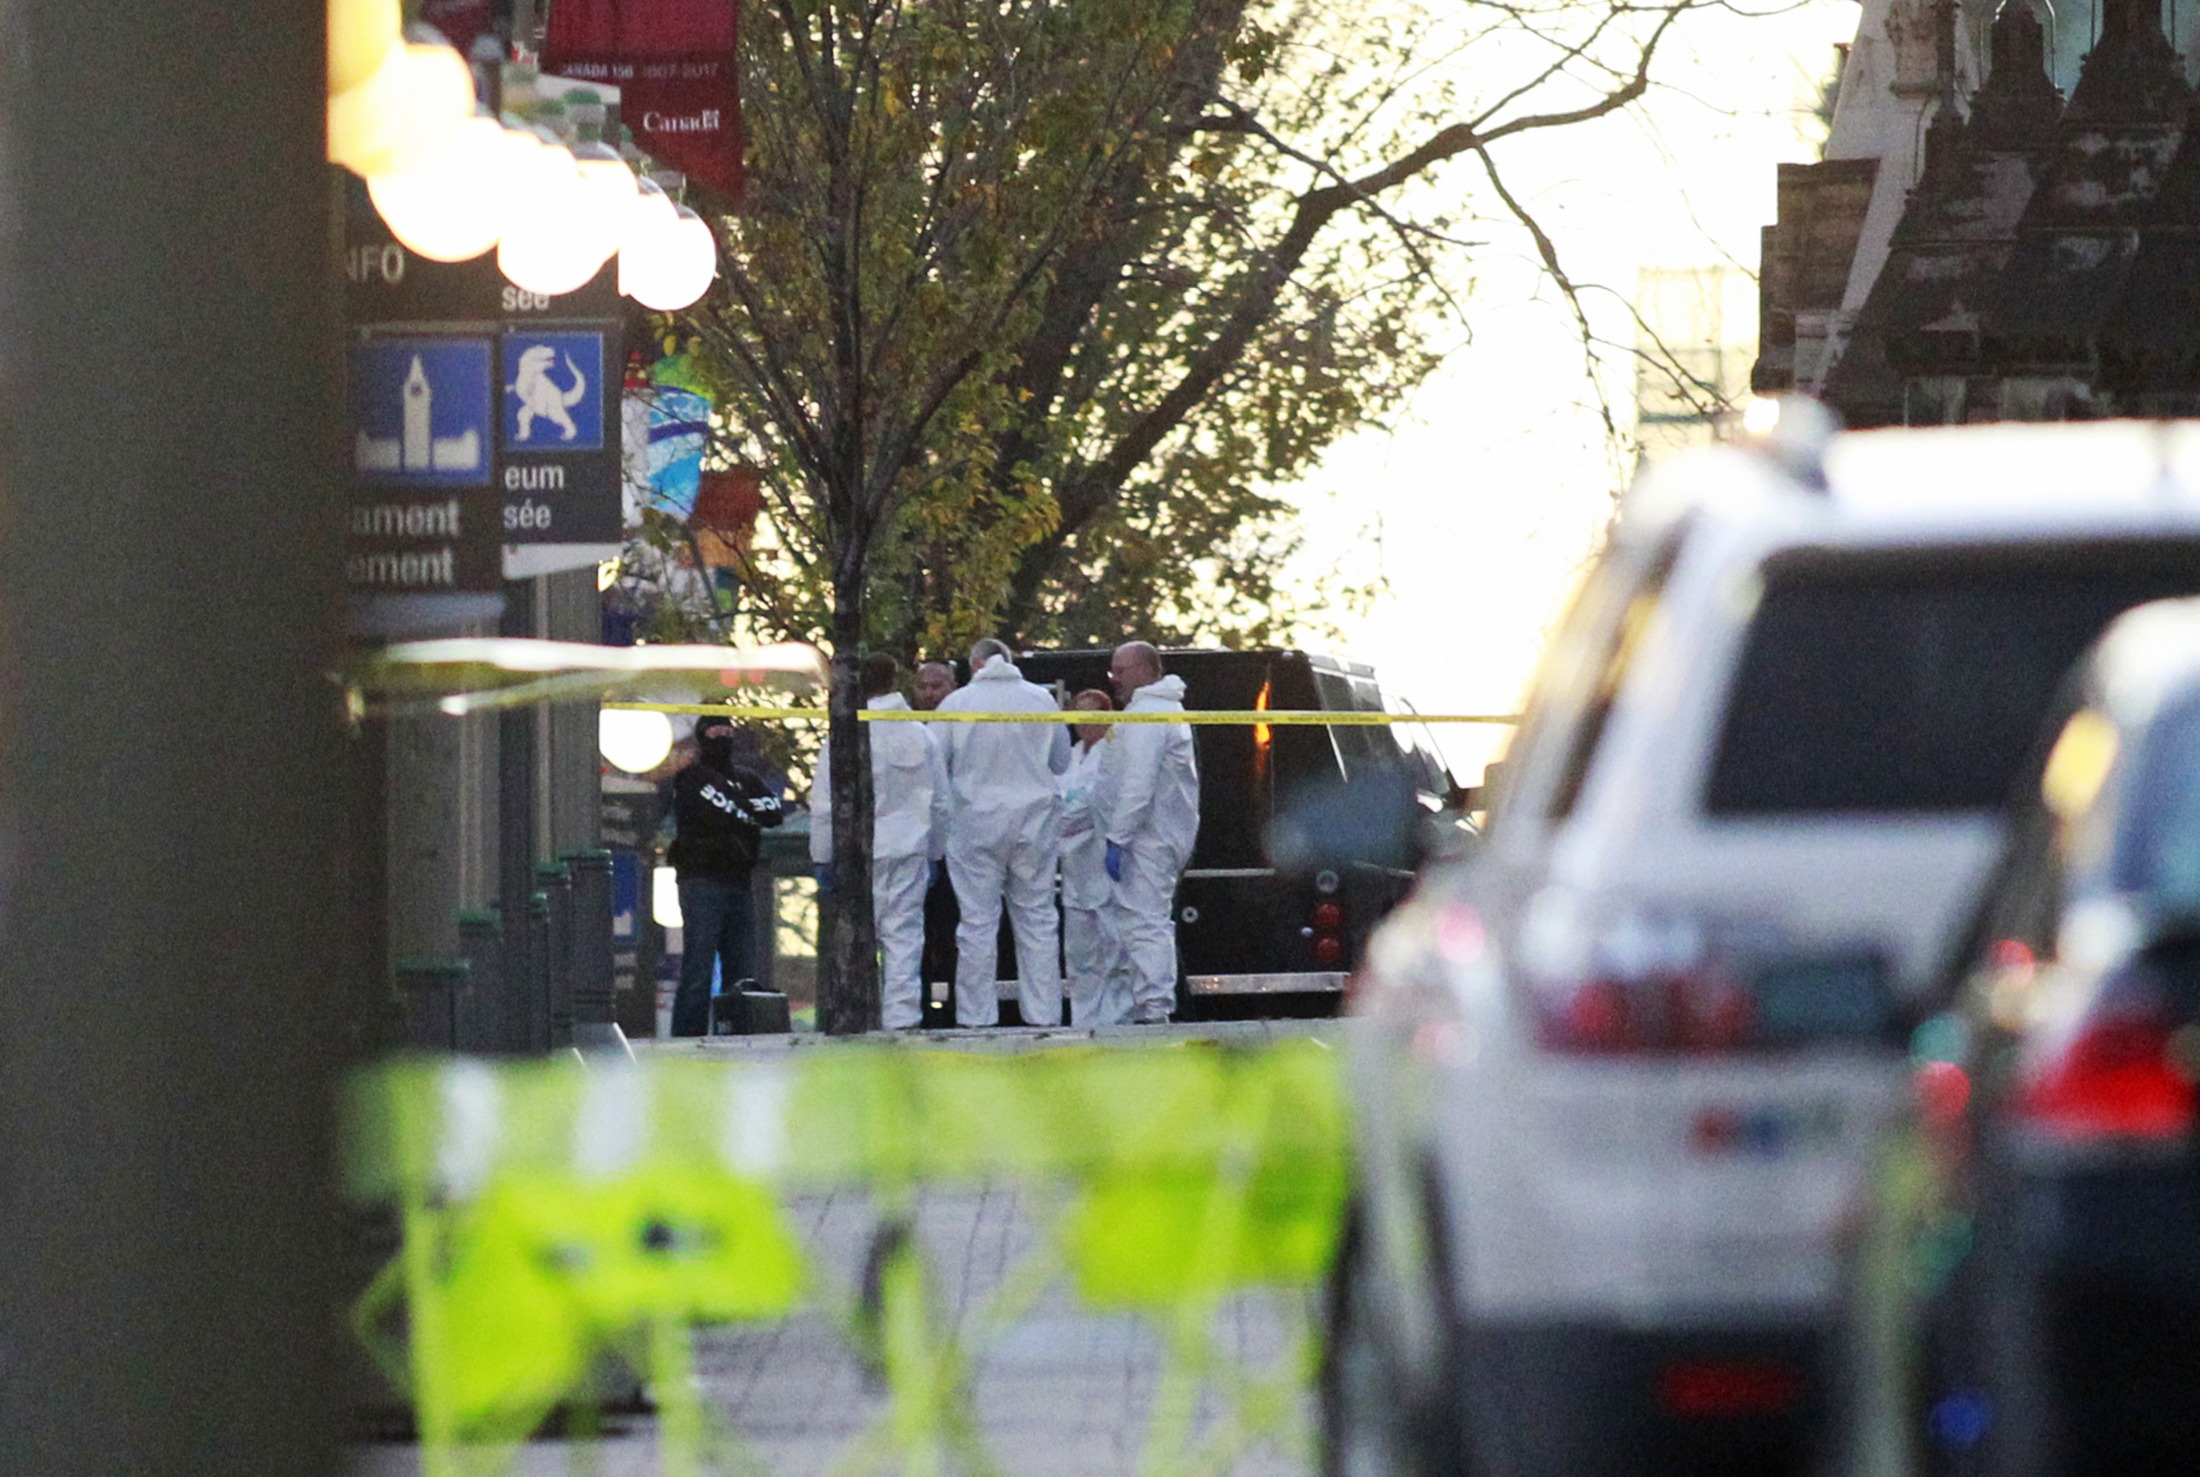 Ottawa pushes for business as usual after shootings